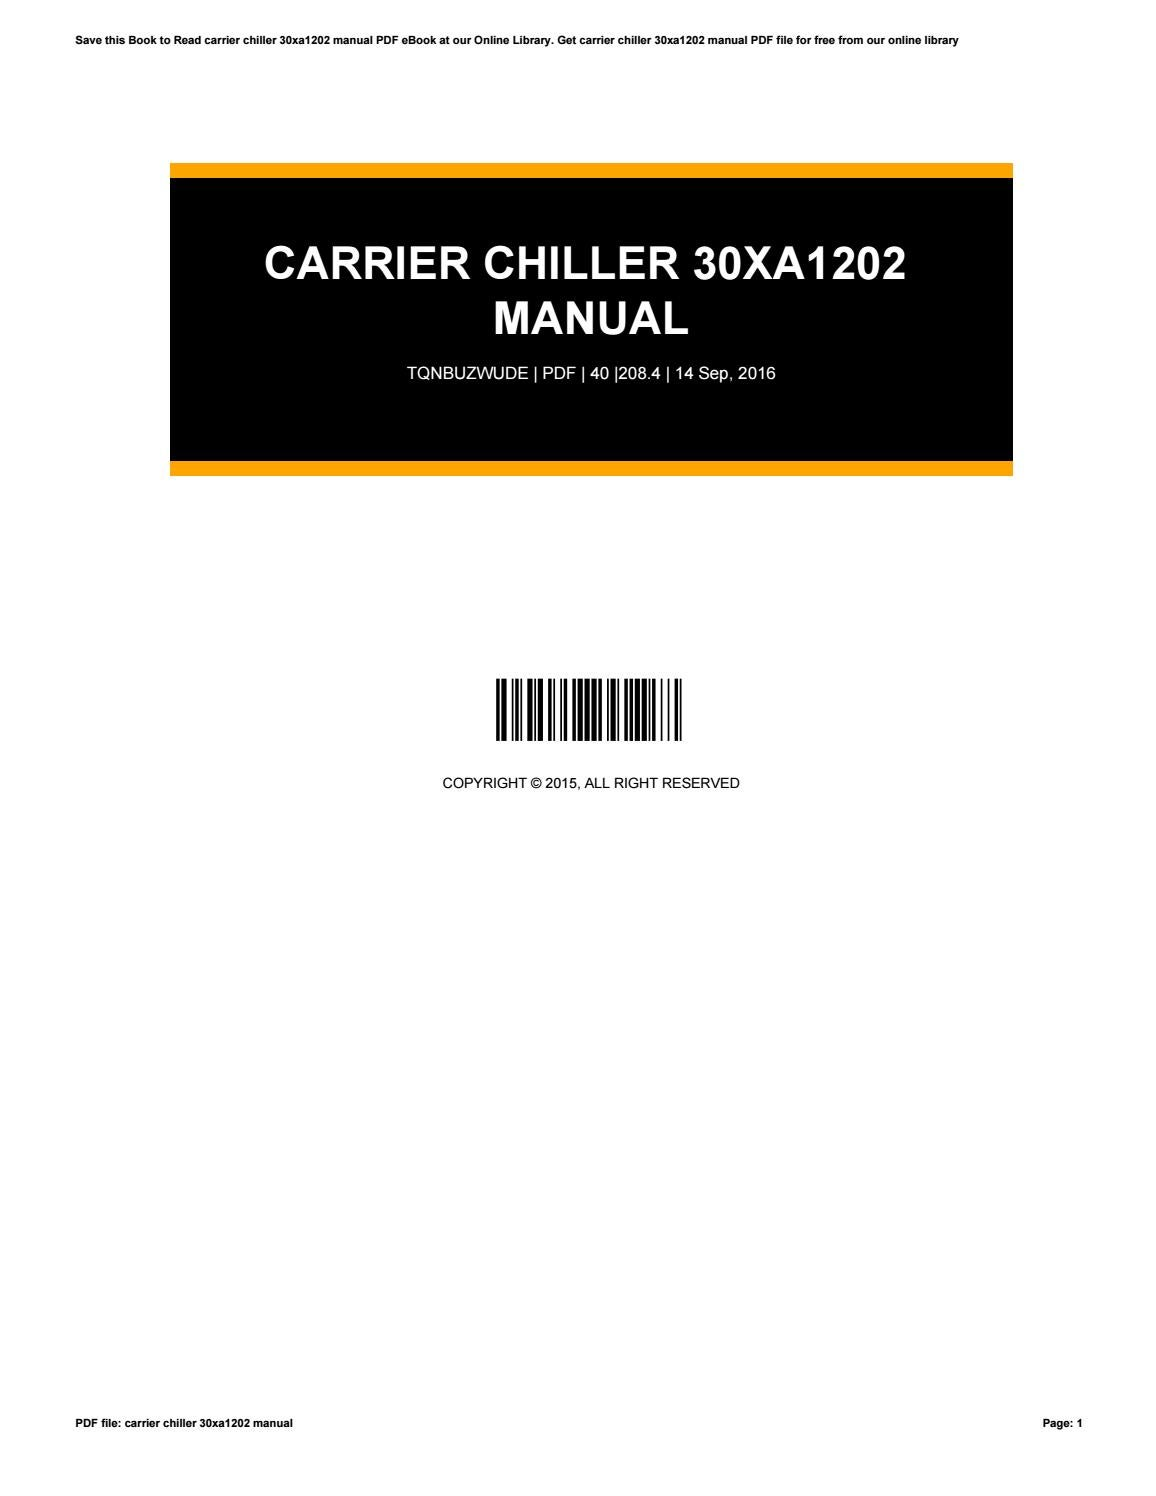 cisco ip phone 7965 manual espa c3 a3 c6 92 c3 a2 c2 b1ol free rh wordworksbysea com Carrier Furnace Installation Manual Carrier Furnace Installation Manual